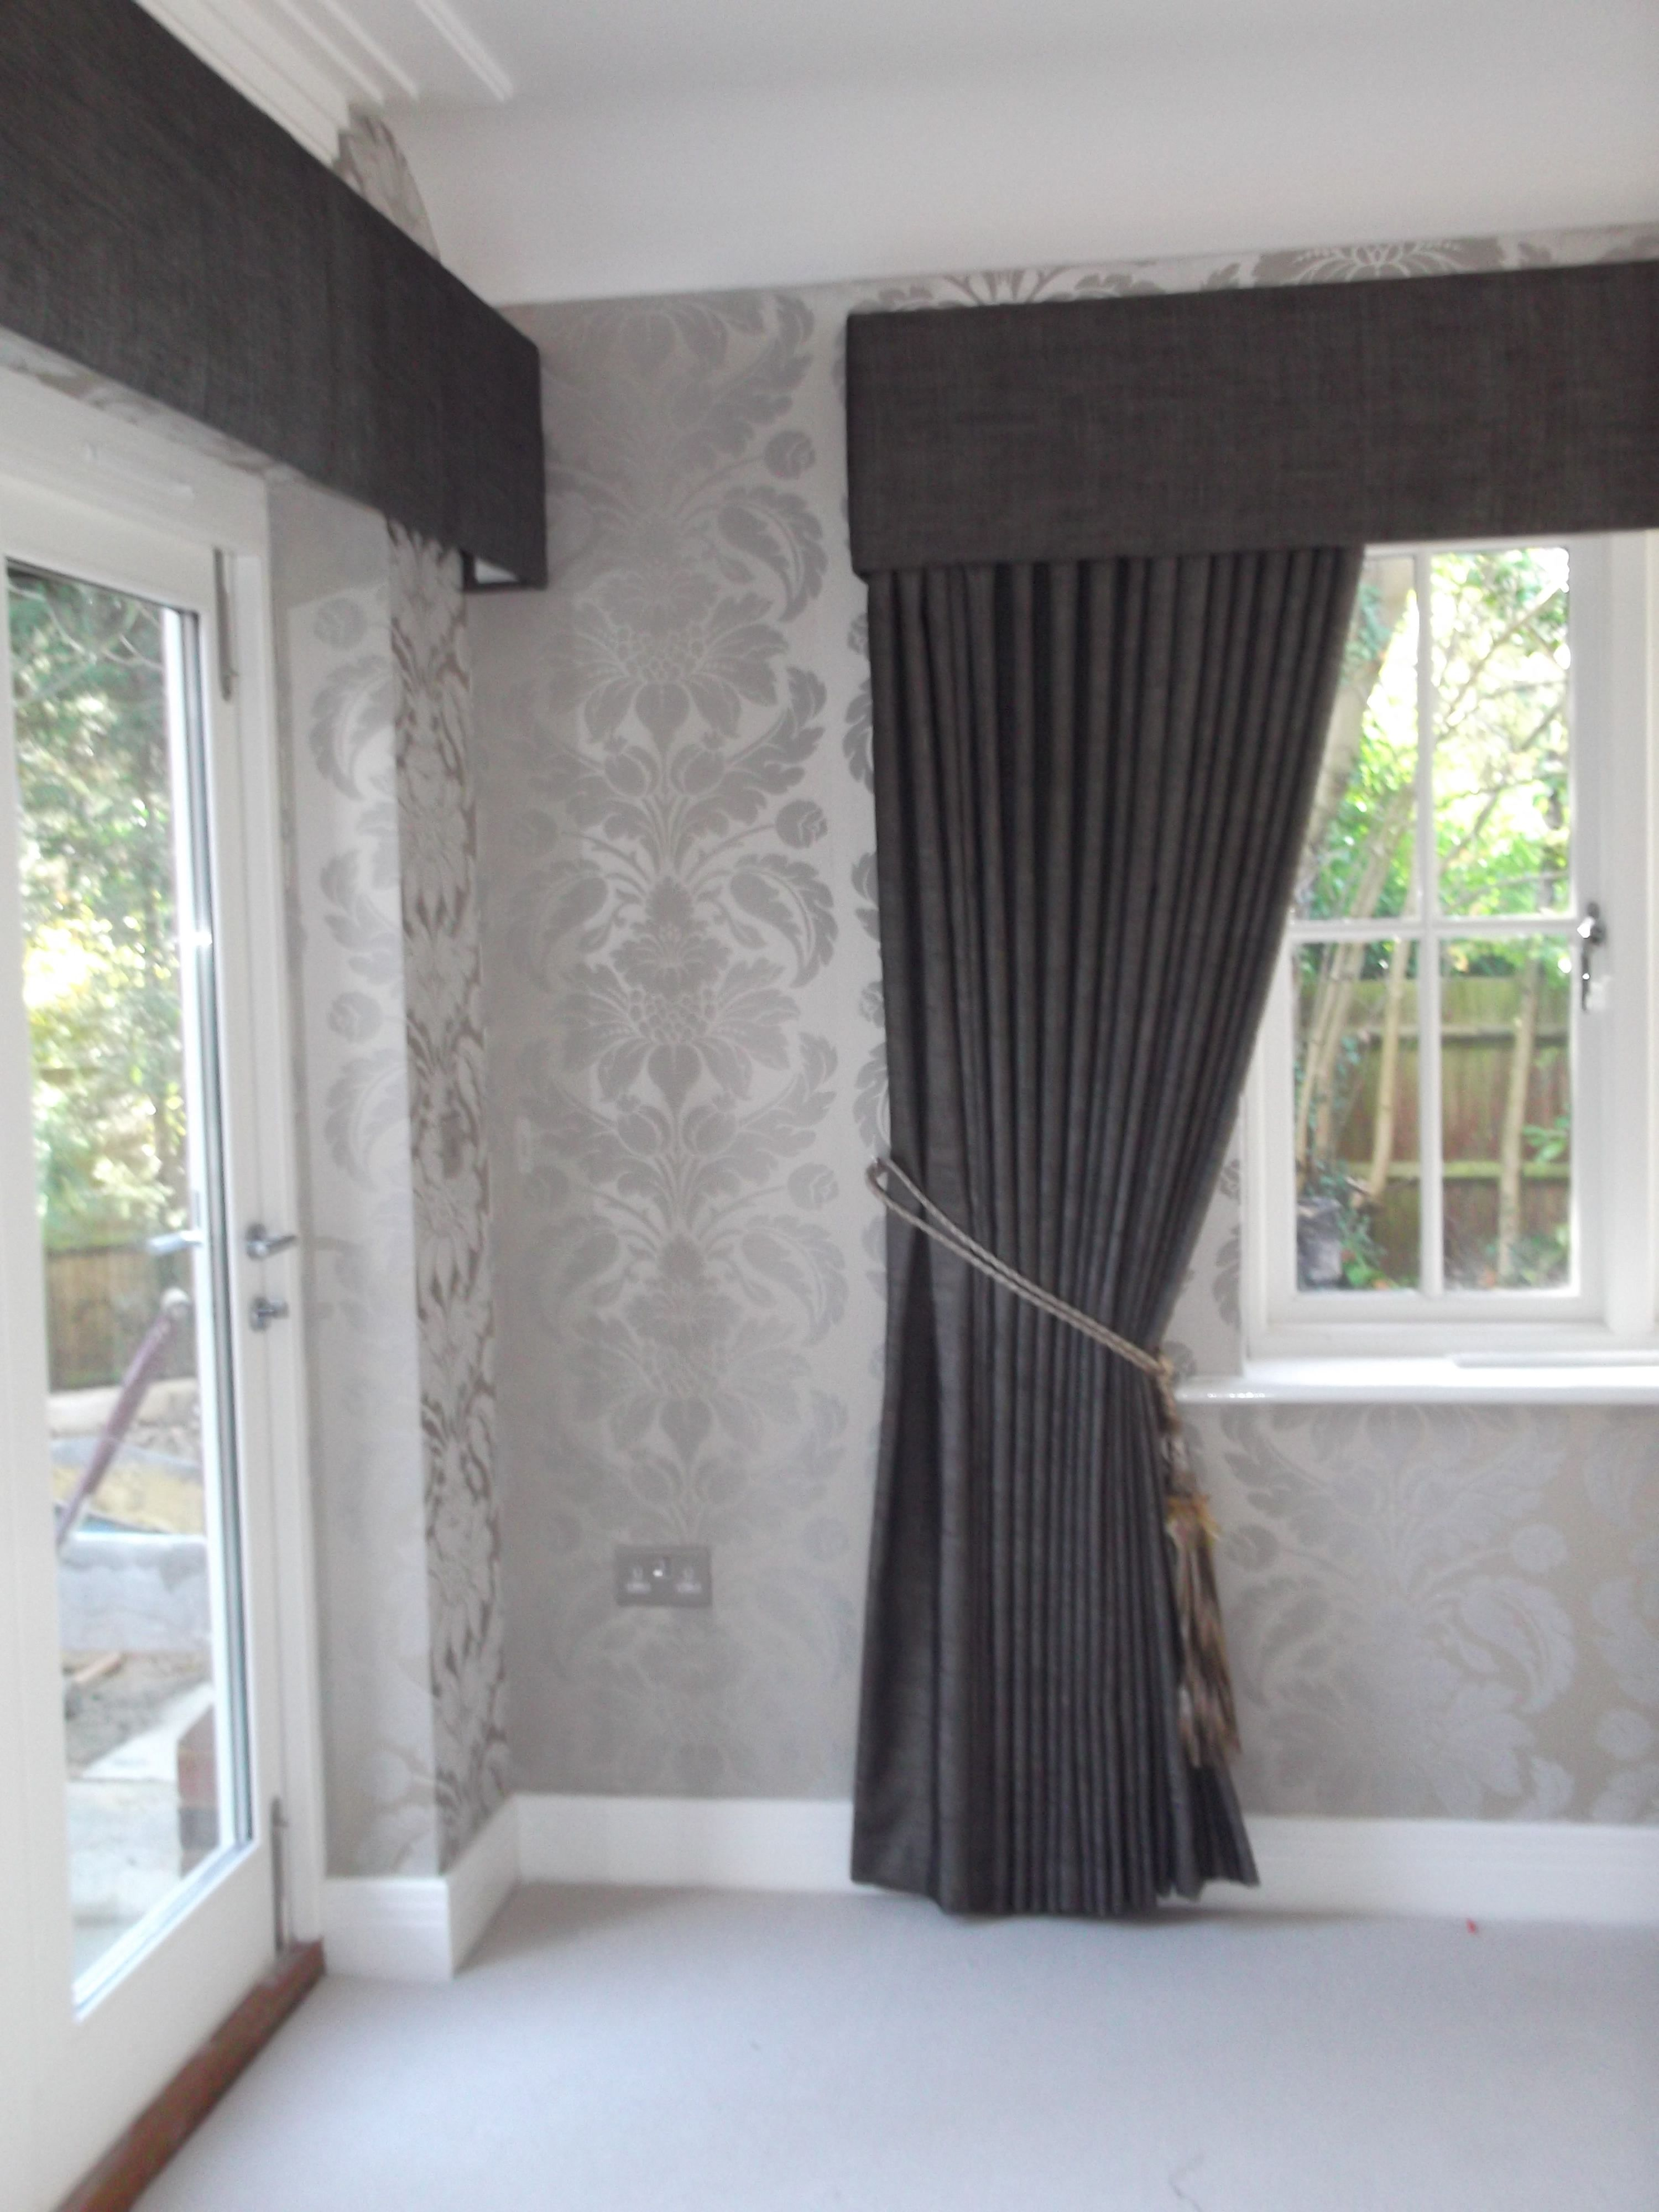 Light grey window curtains - Full Length Curtains With Pelmet Should Resolve Light Leak Top Of Blinds